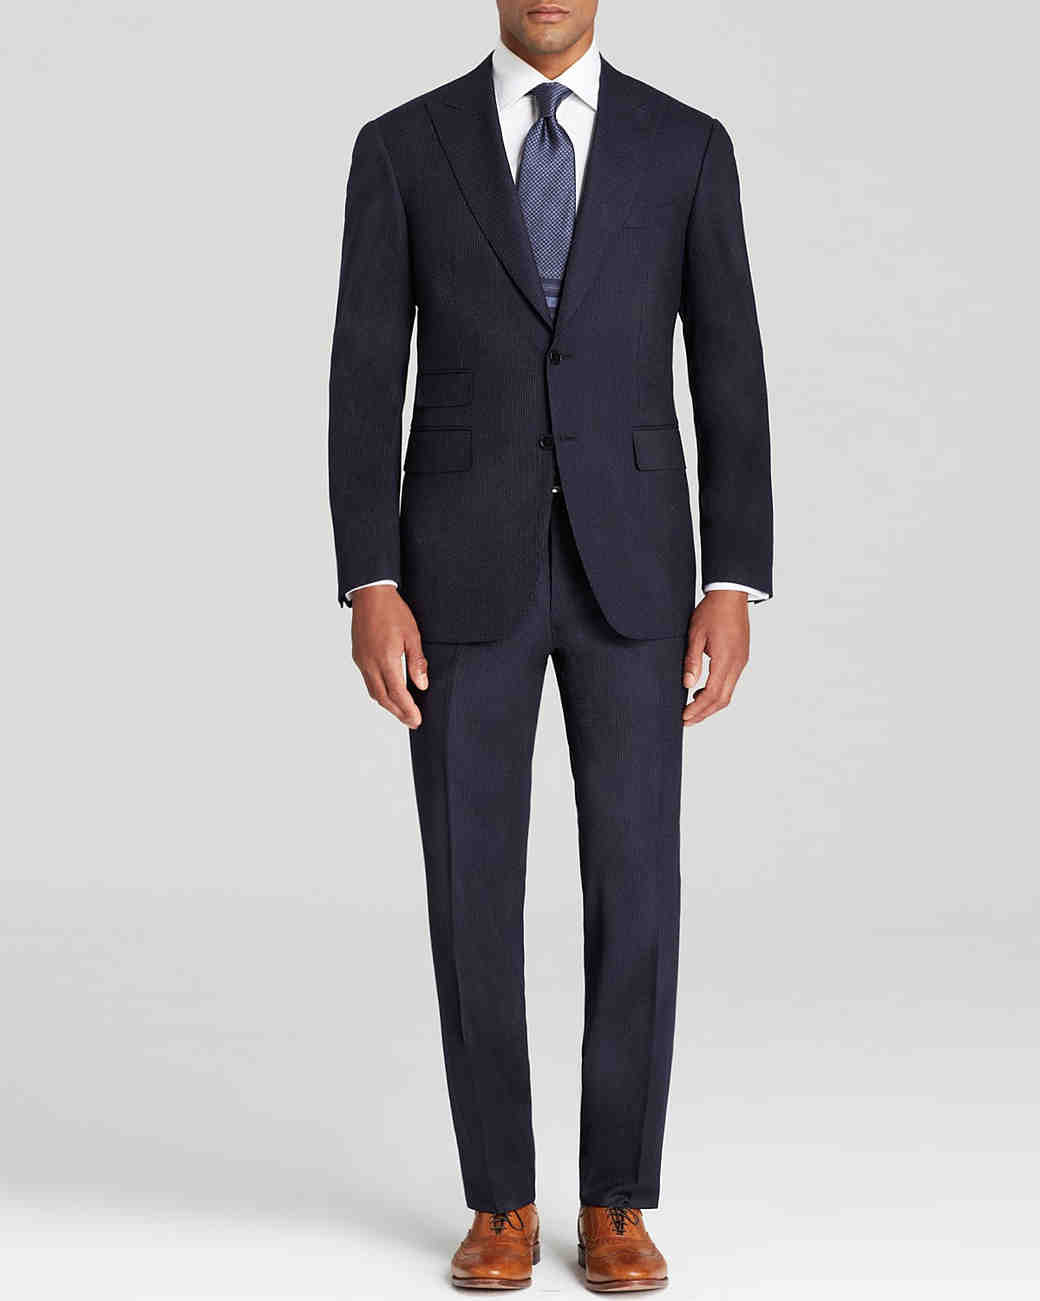 fall-groom-suits-bloomingdales-canali-stripe-suit-1014.jpg